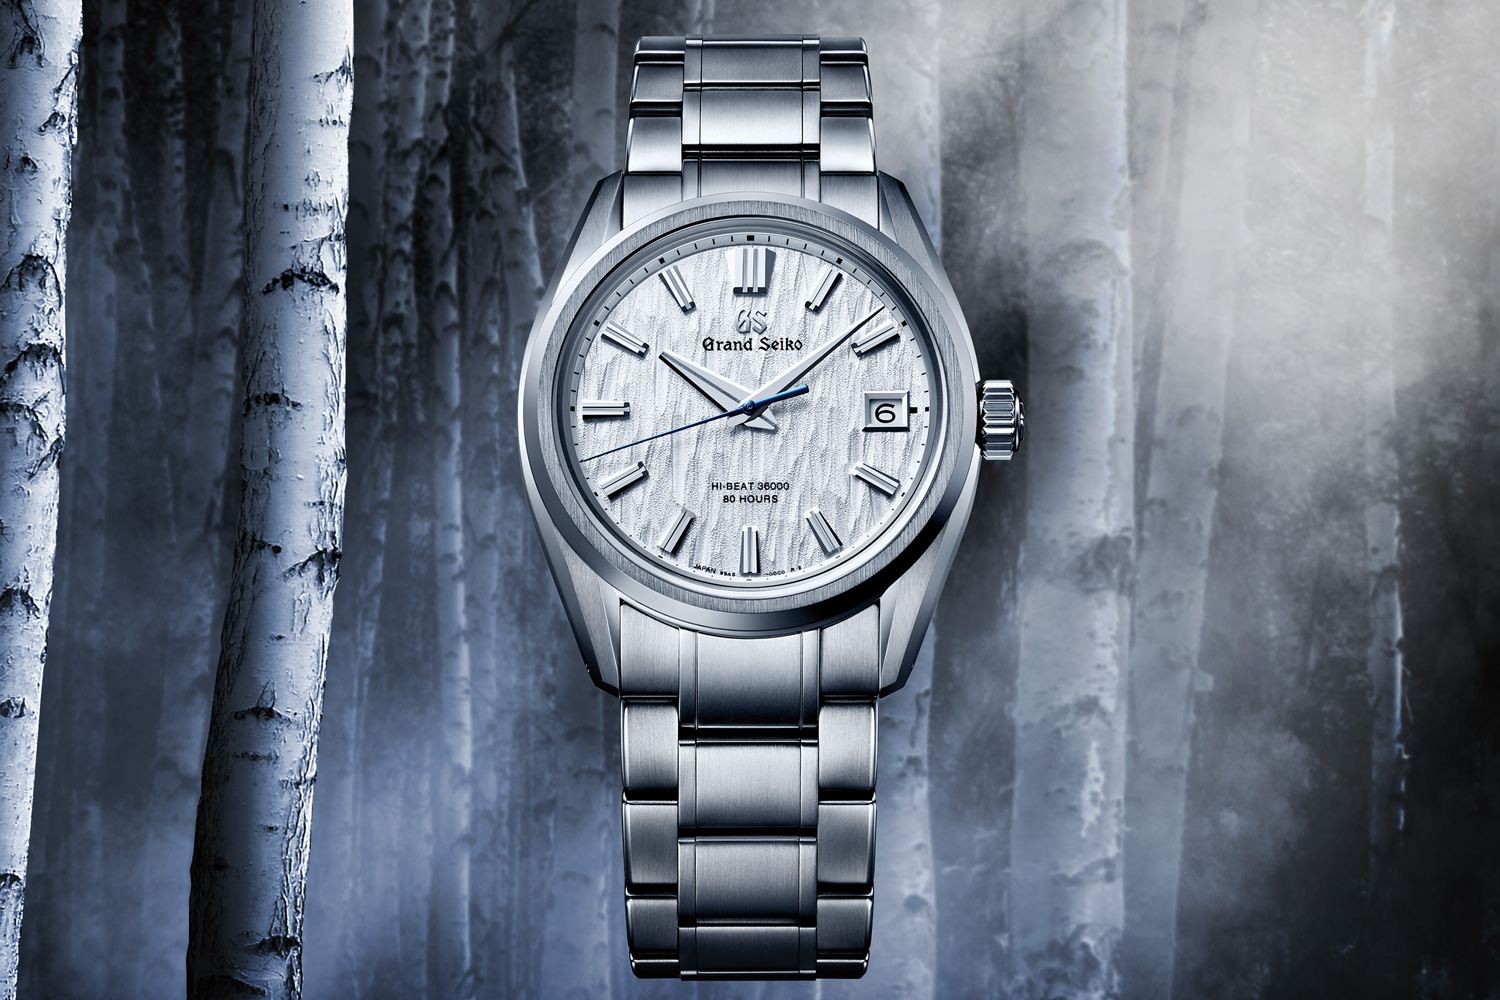 Grand Seiko's Heritage Collection Series 9 SLGH005 is inspired by white birch trees that grow near the Grand Seiko Studio Shizukuishi in the northern part of Japan.